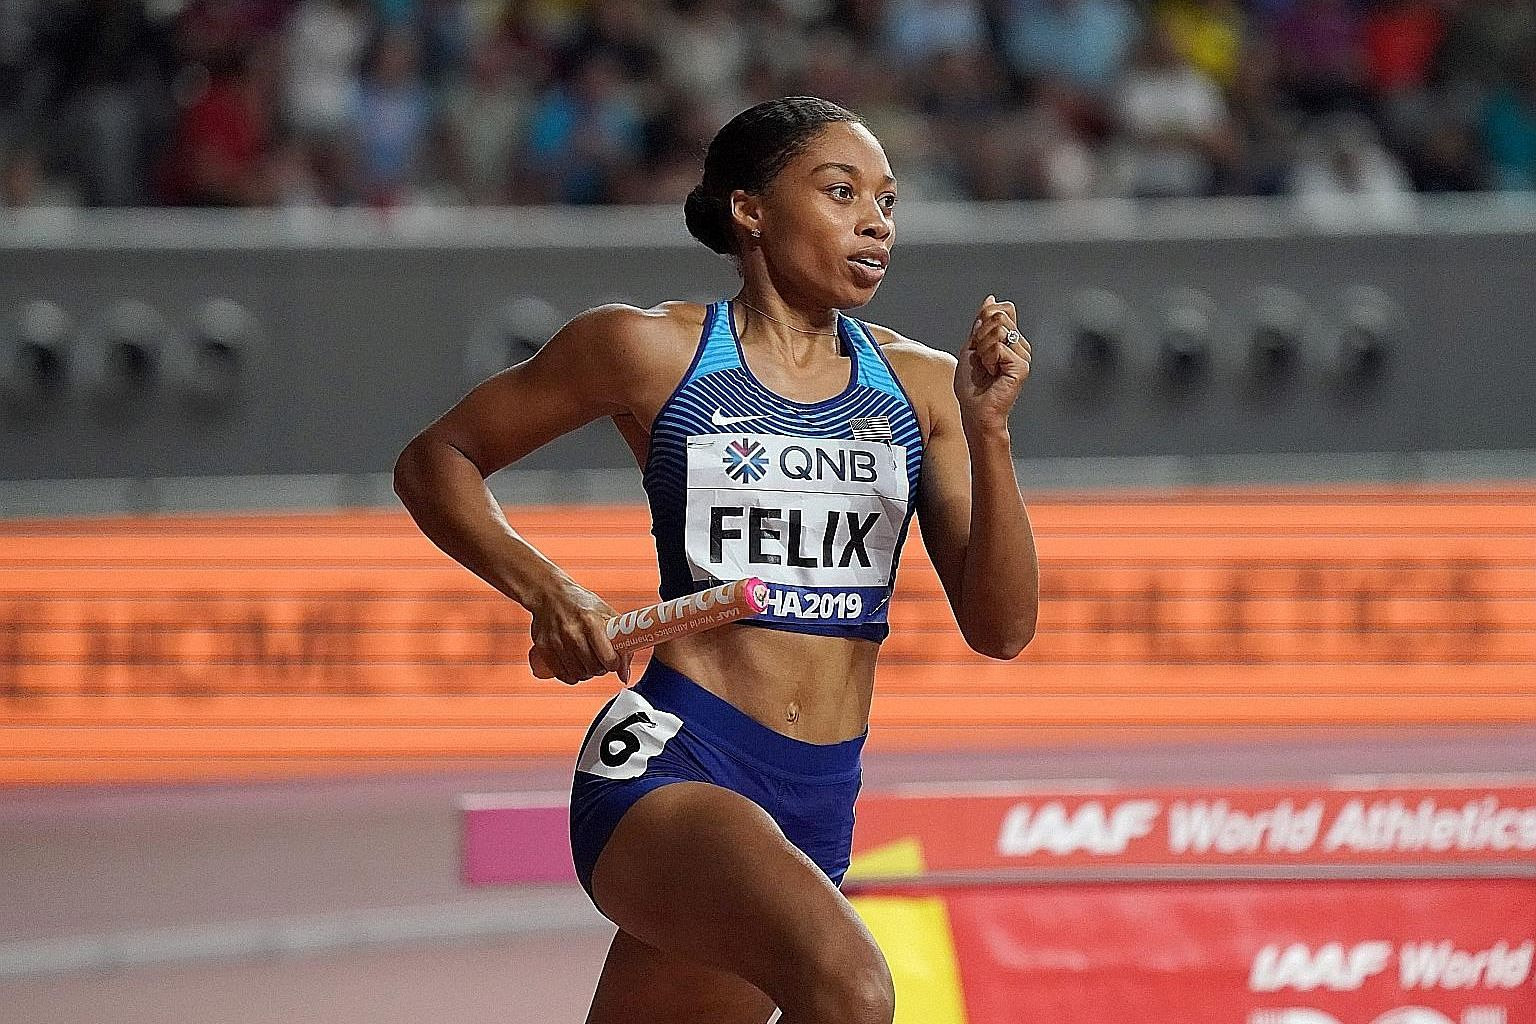 From far left: Allyson Felix runs at last year's World Championships after becoming a mother. Kerri Strug with a heavily bandaged ankle on the podium at the 1996 Olympics. Height was an obstacle 1.6m-tall Tyrone Bogues worked around during his NBA ca